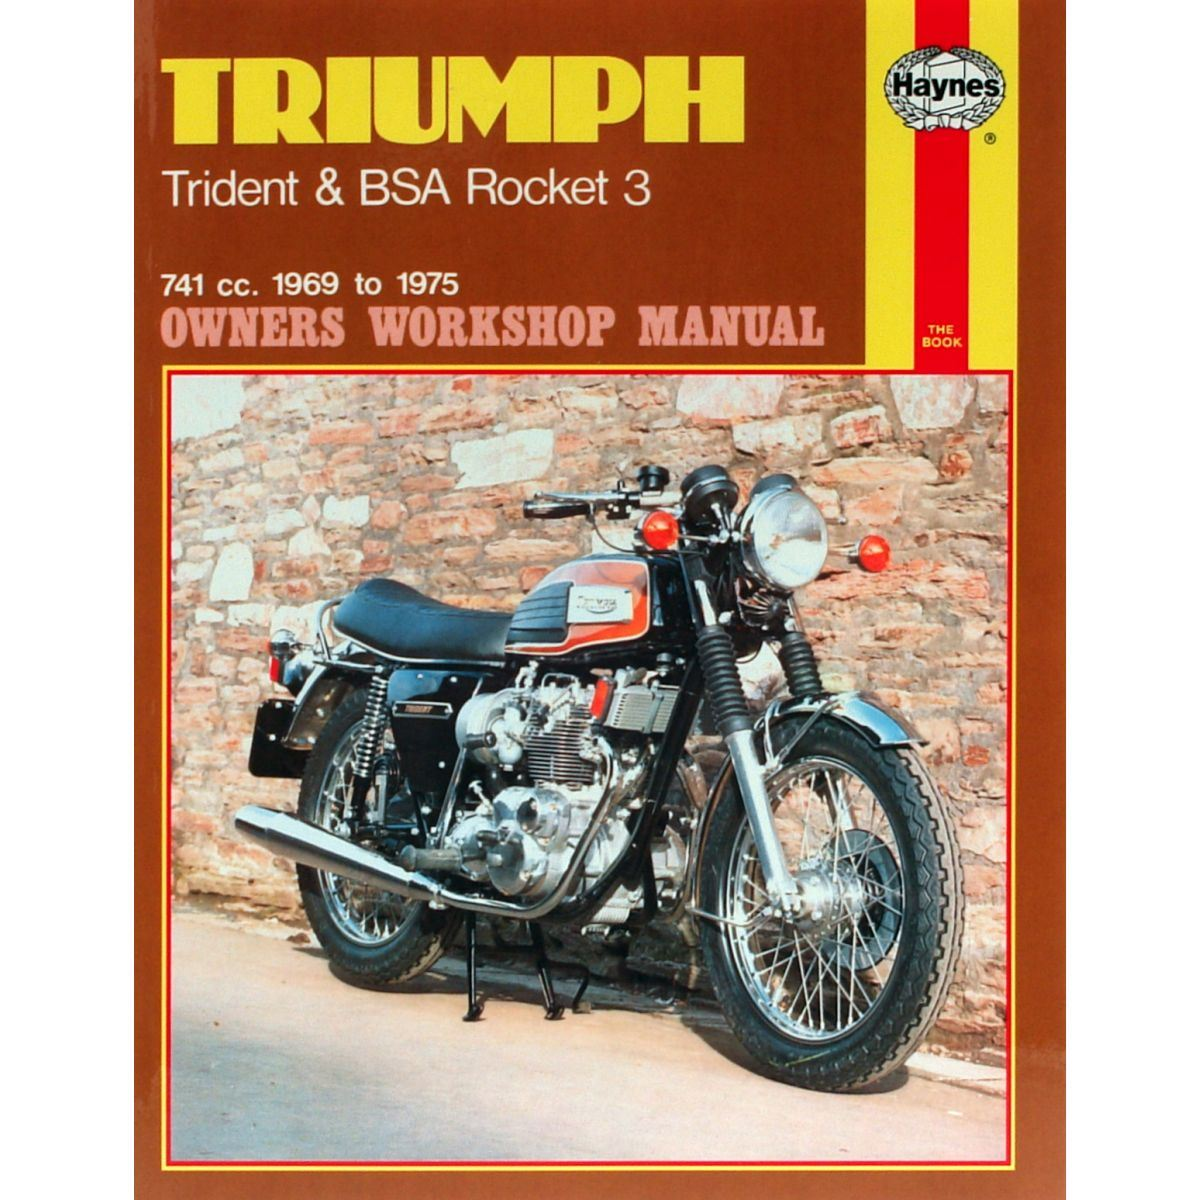 Image is loading Haynes-Manual-136-Triumph-TRIDENT-amp-BSA-ROCKET-